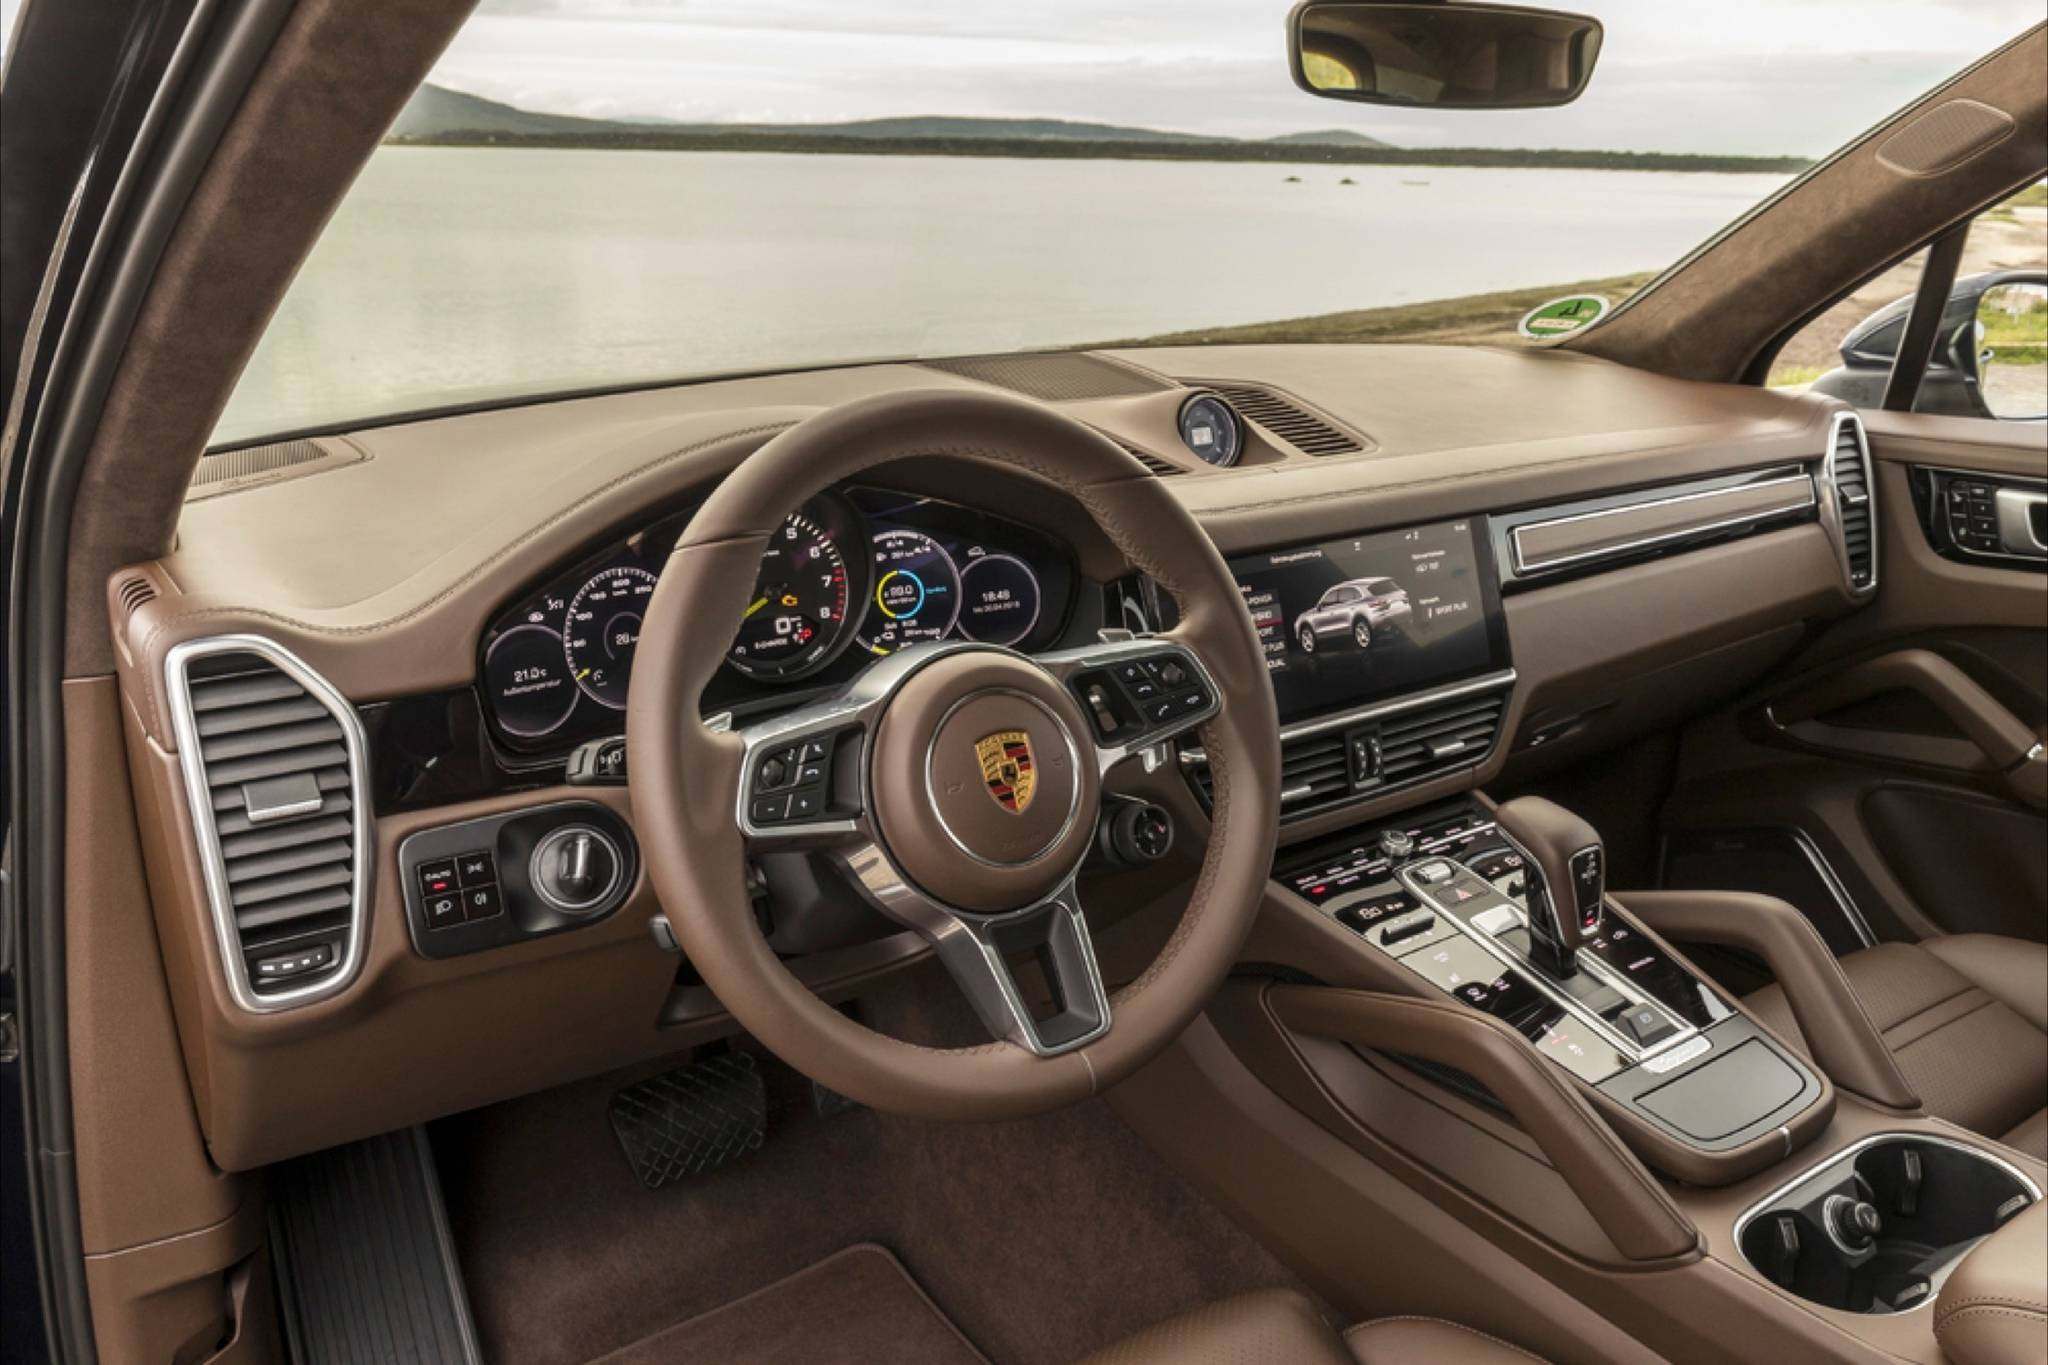 2019 Porsche Cayenne brings top level of refinement and performance